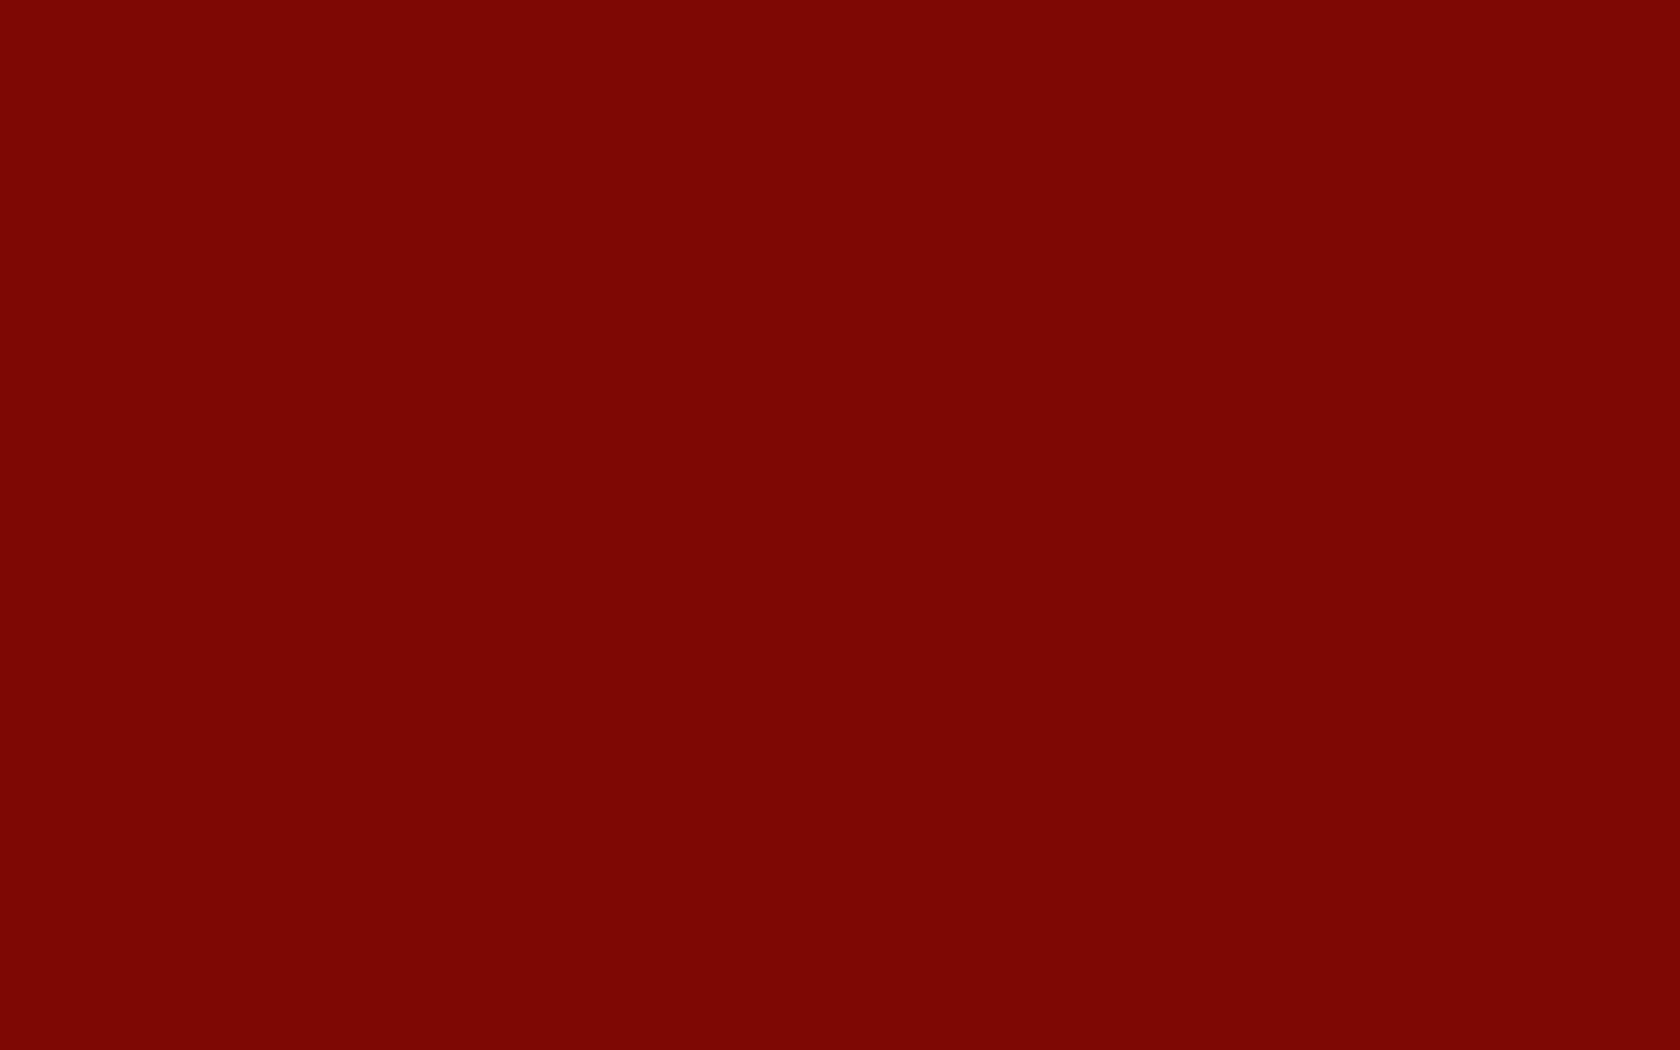 1680x1050 Barn Red Solid Color Background